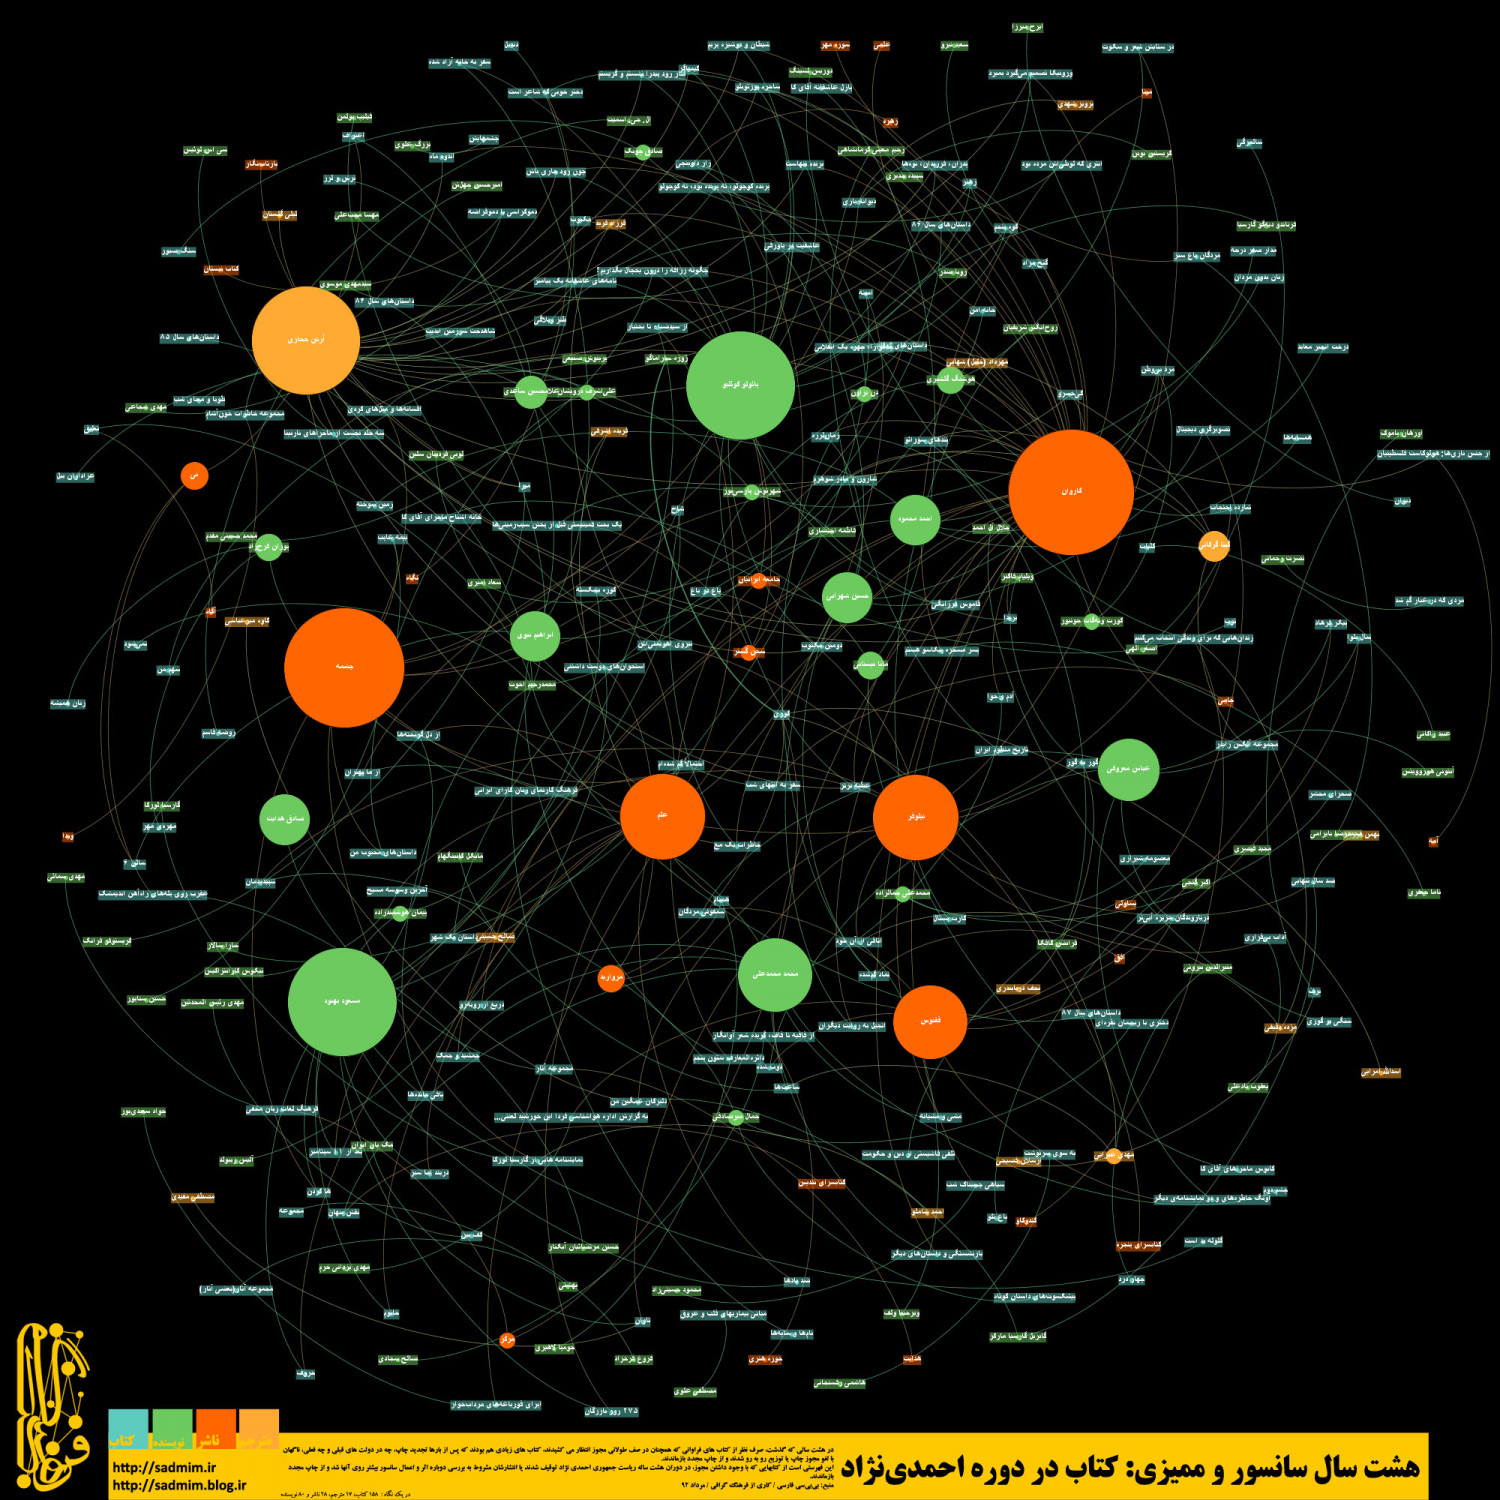 Banned Books In Iran : 8 years Ahmadinejad Infographic